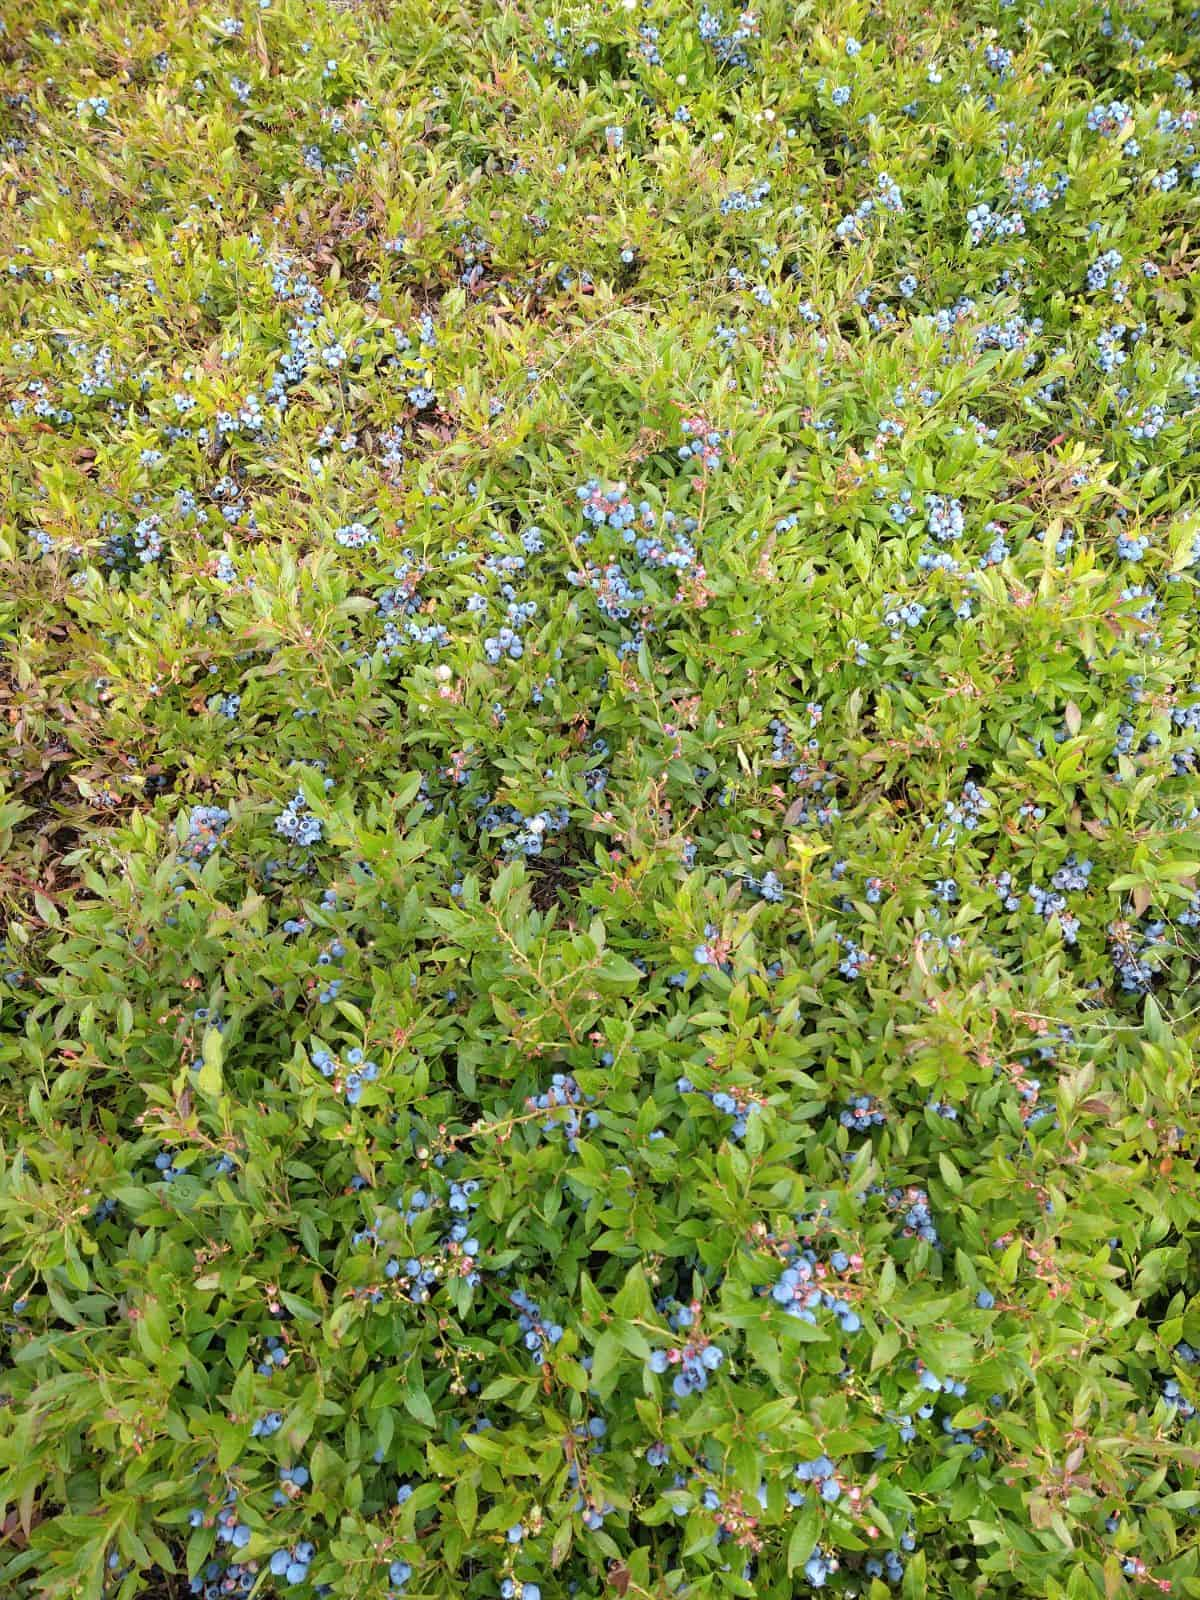 A patch of wild blueberries that is full of berries that are ready to be picked. The bushes are very low to the ground.